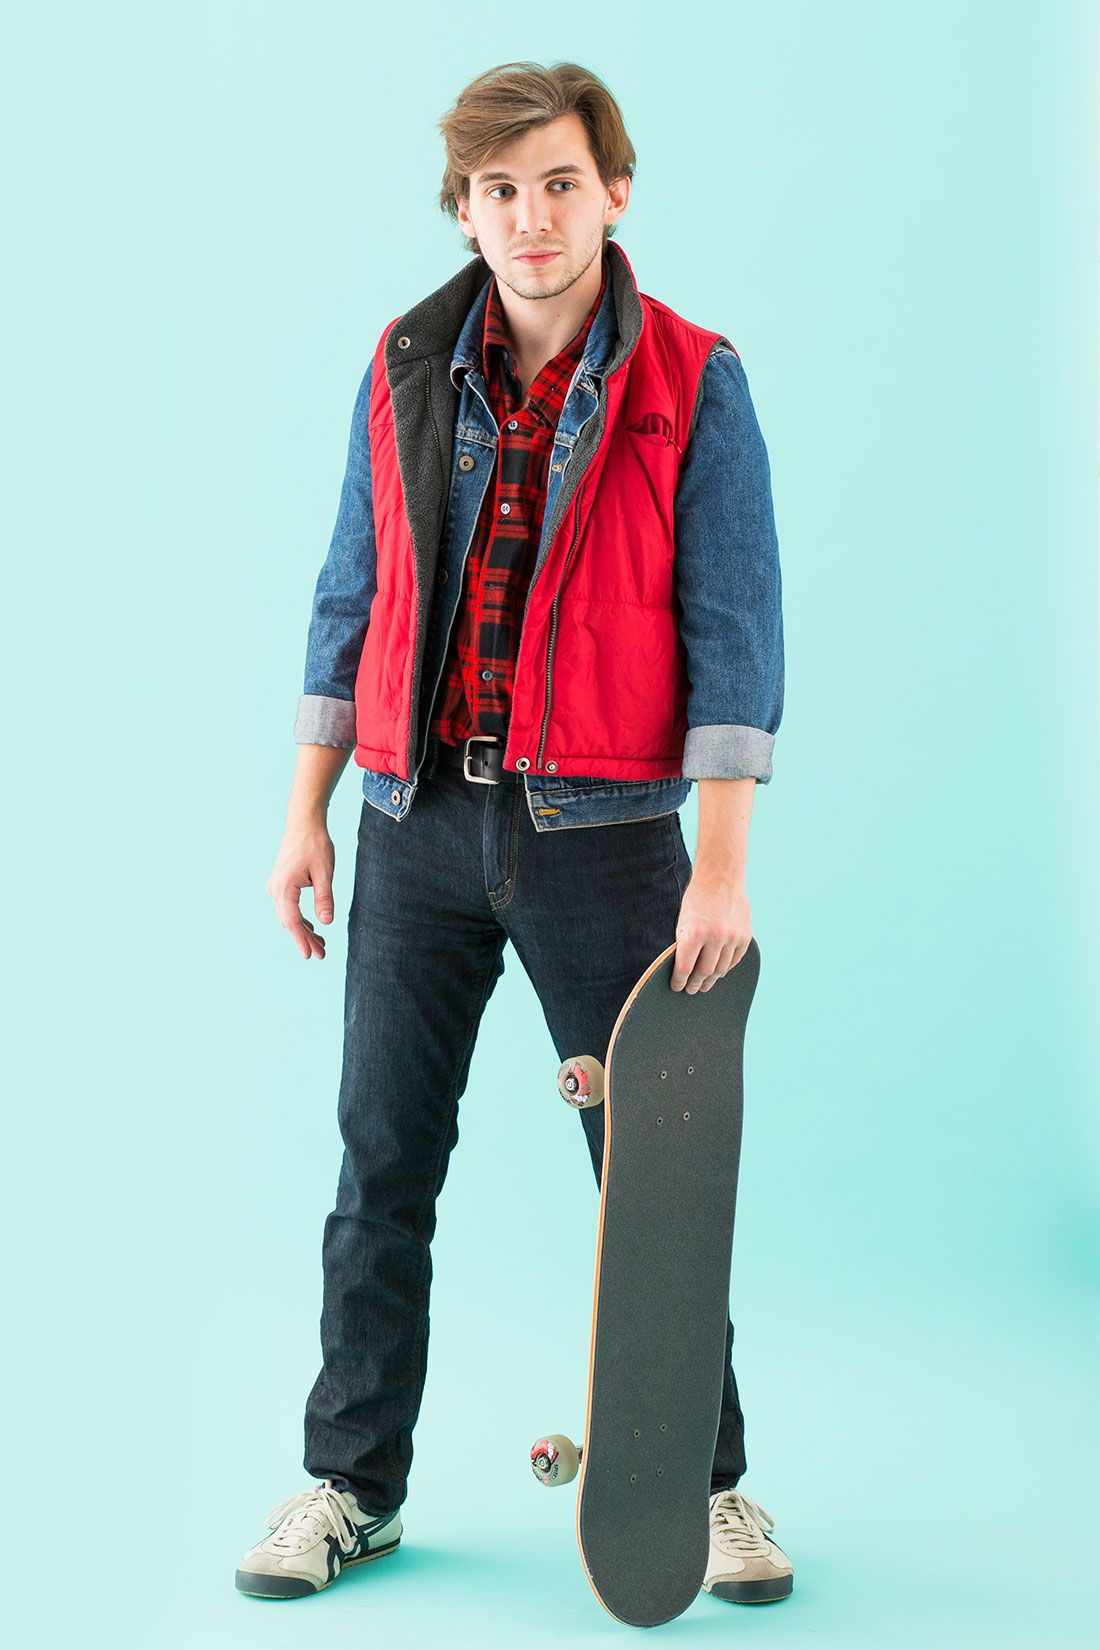 How to Turn 1 Flannel Shirt into 6 Halloween Costumes | Marty mcfly ...